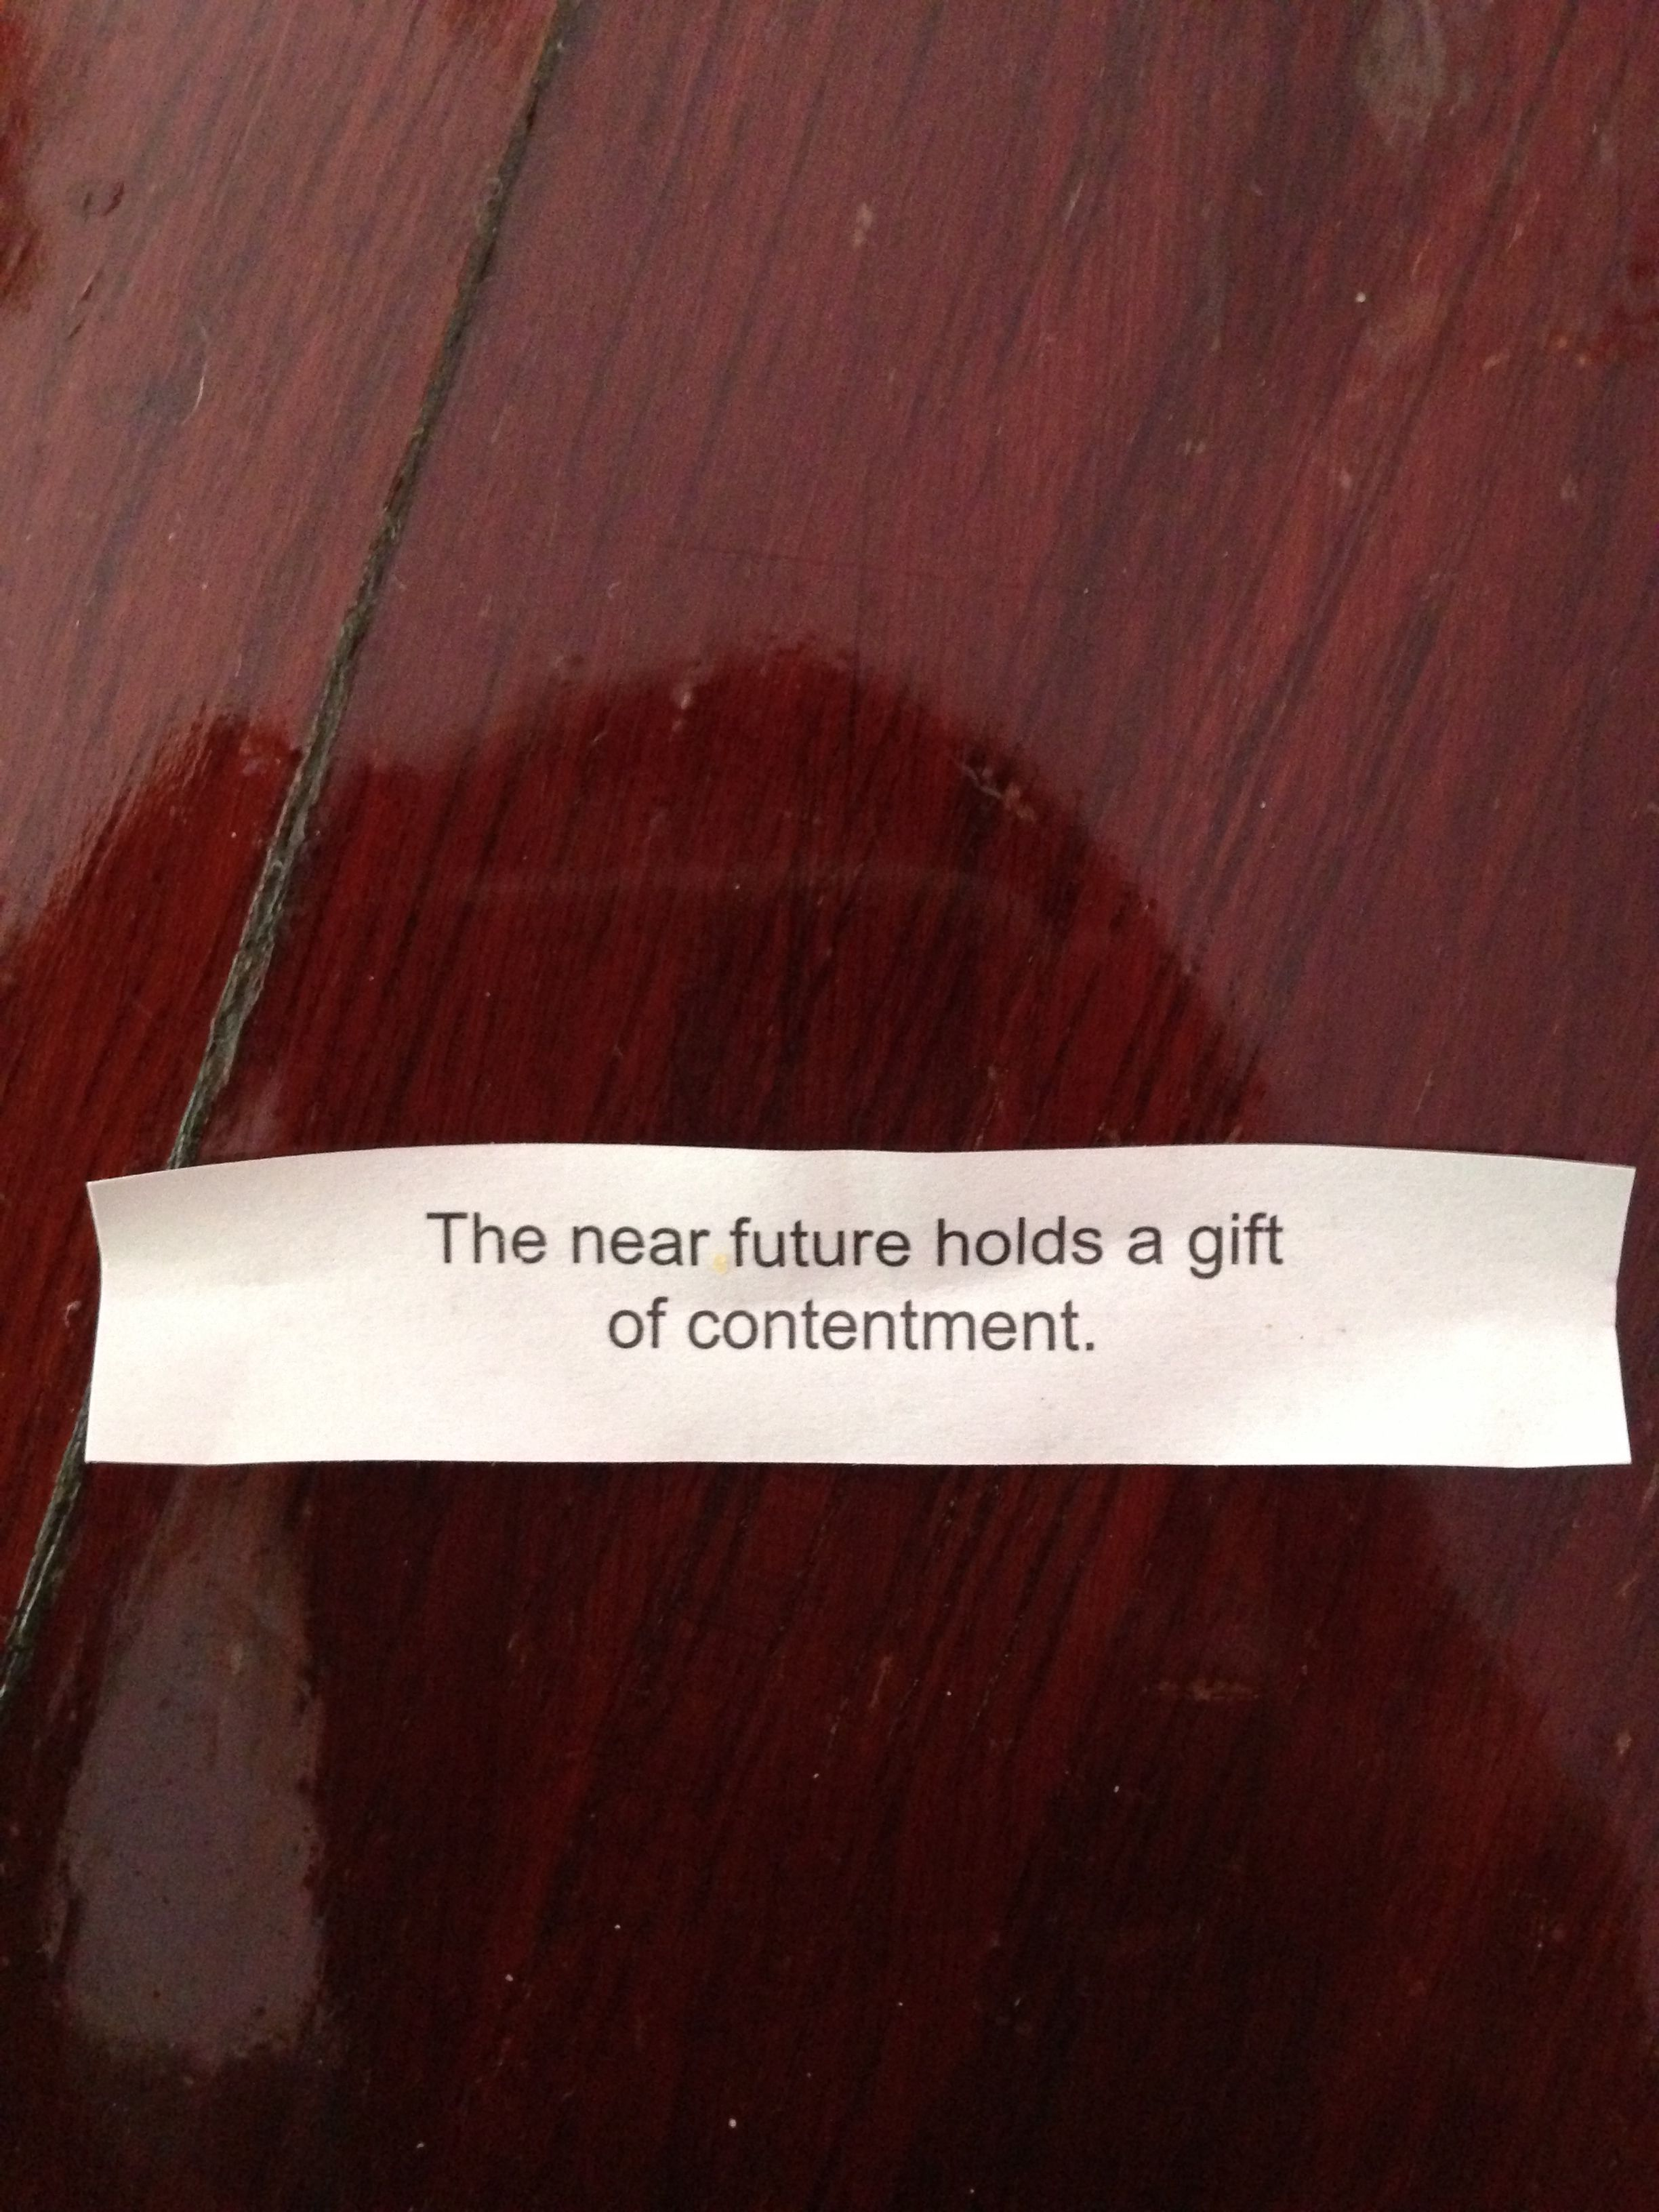 Best fortune EVER!